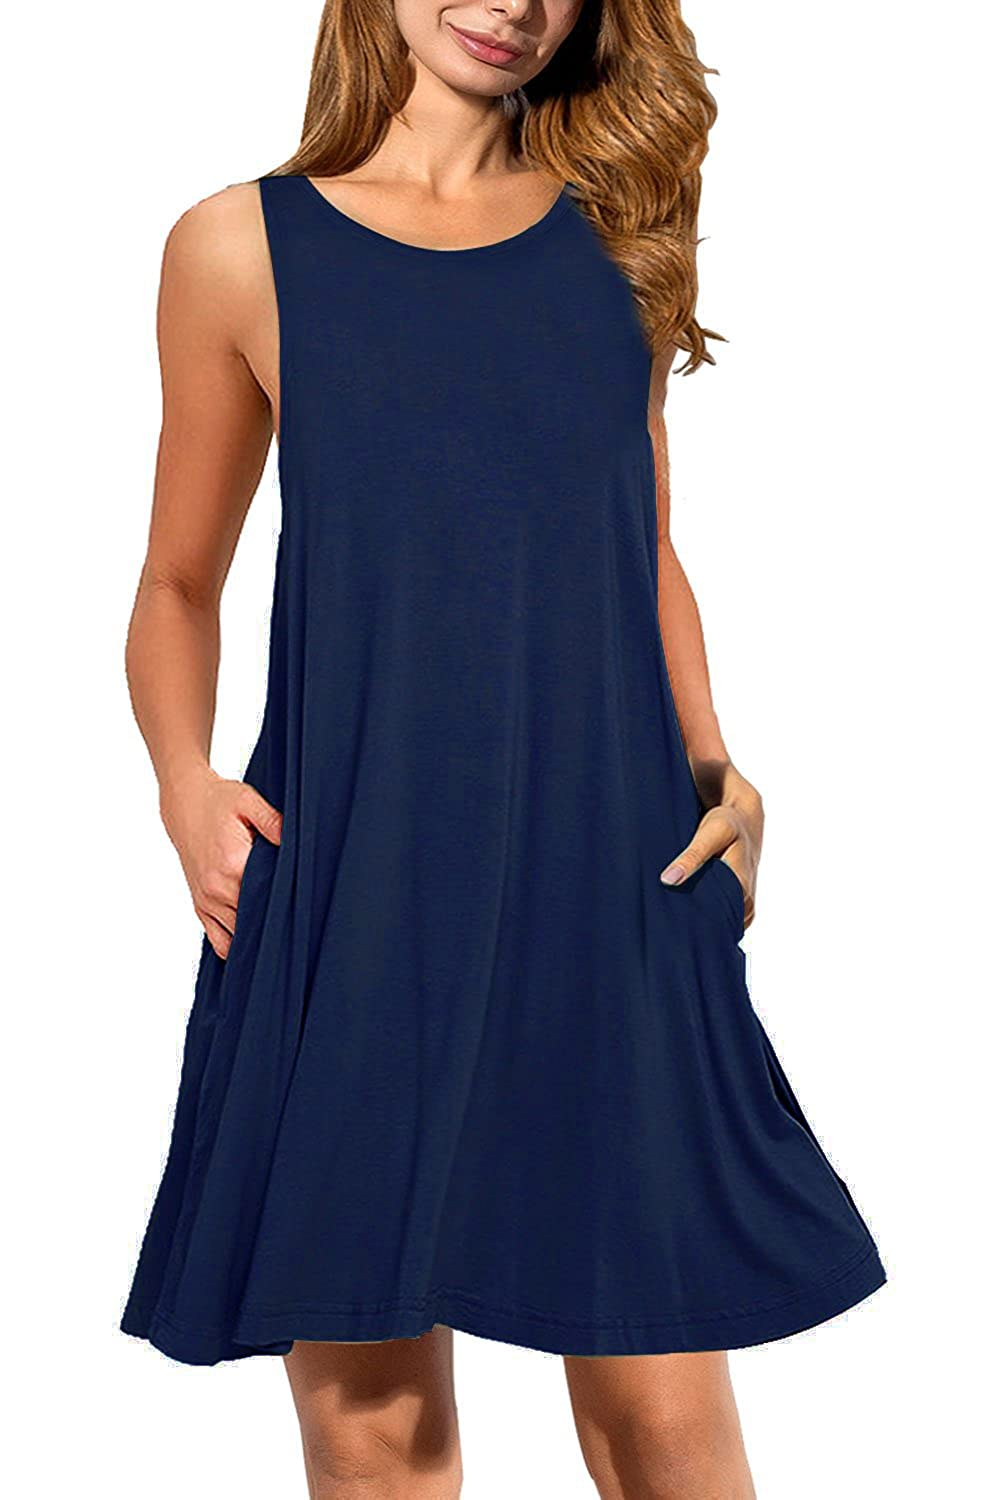 85d649d1eab This womens dresses made of soft   stretchy cotton fabric